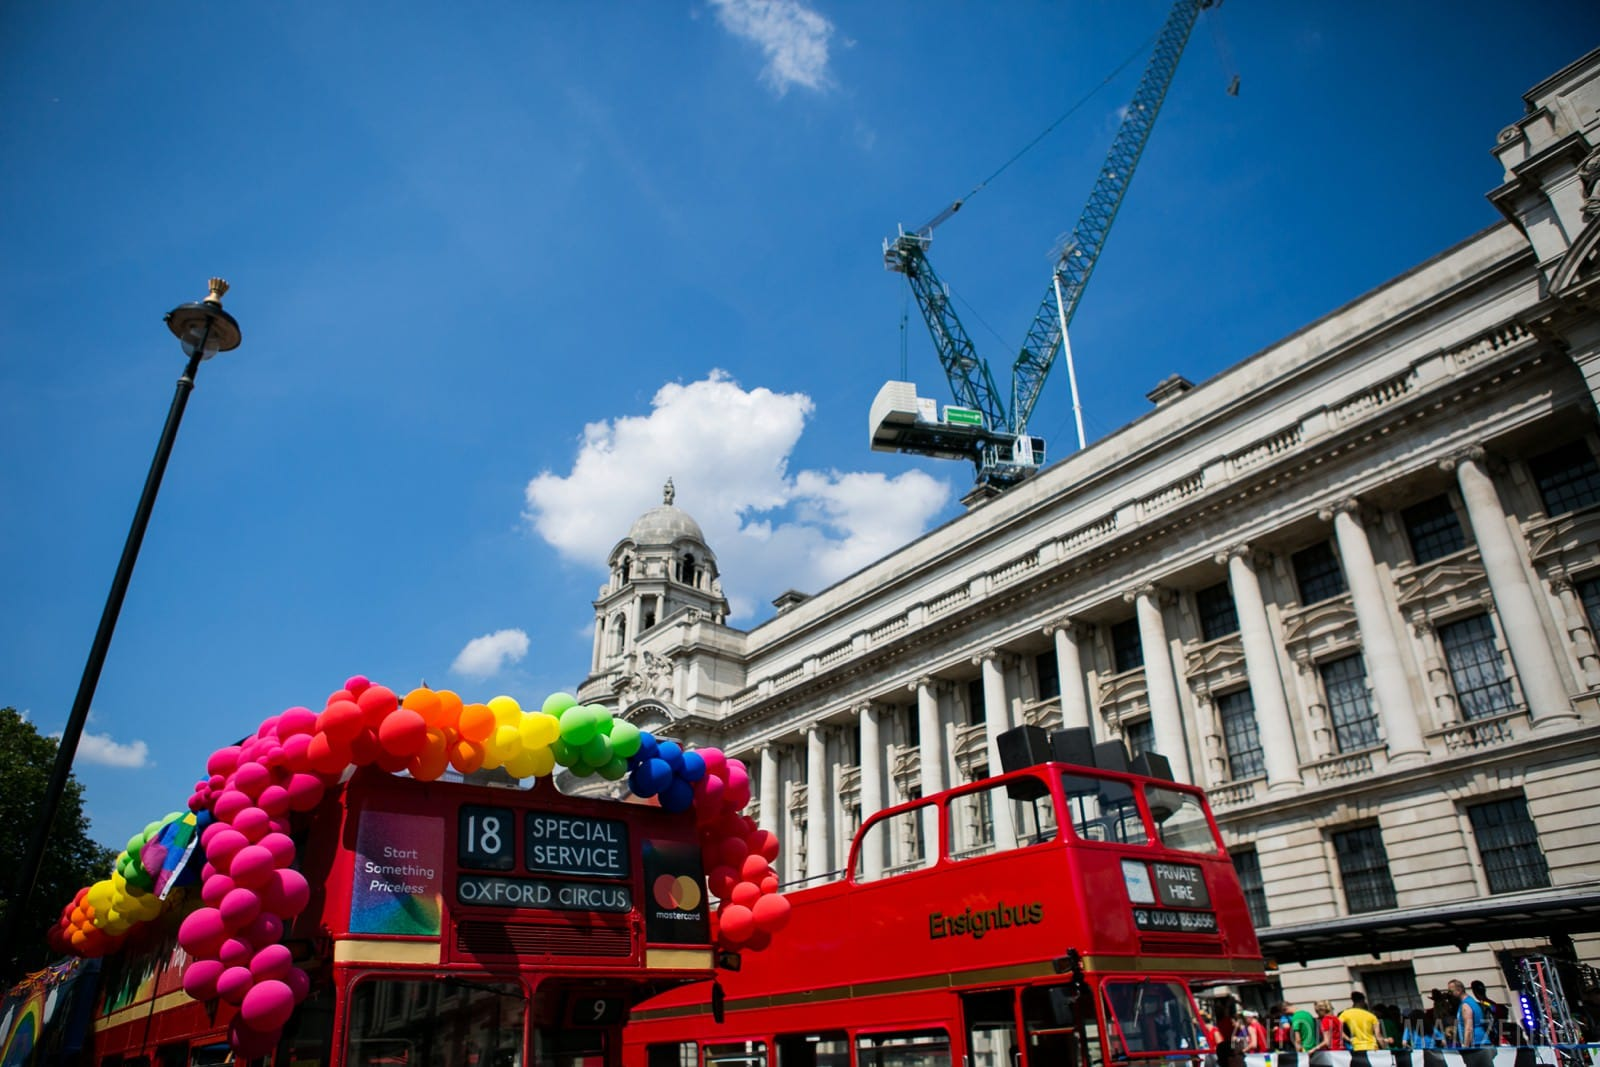 red buses decorated with balloons at the end of London Pride 2018 route